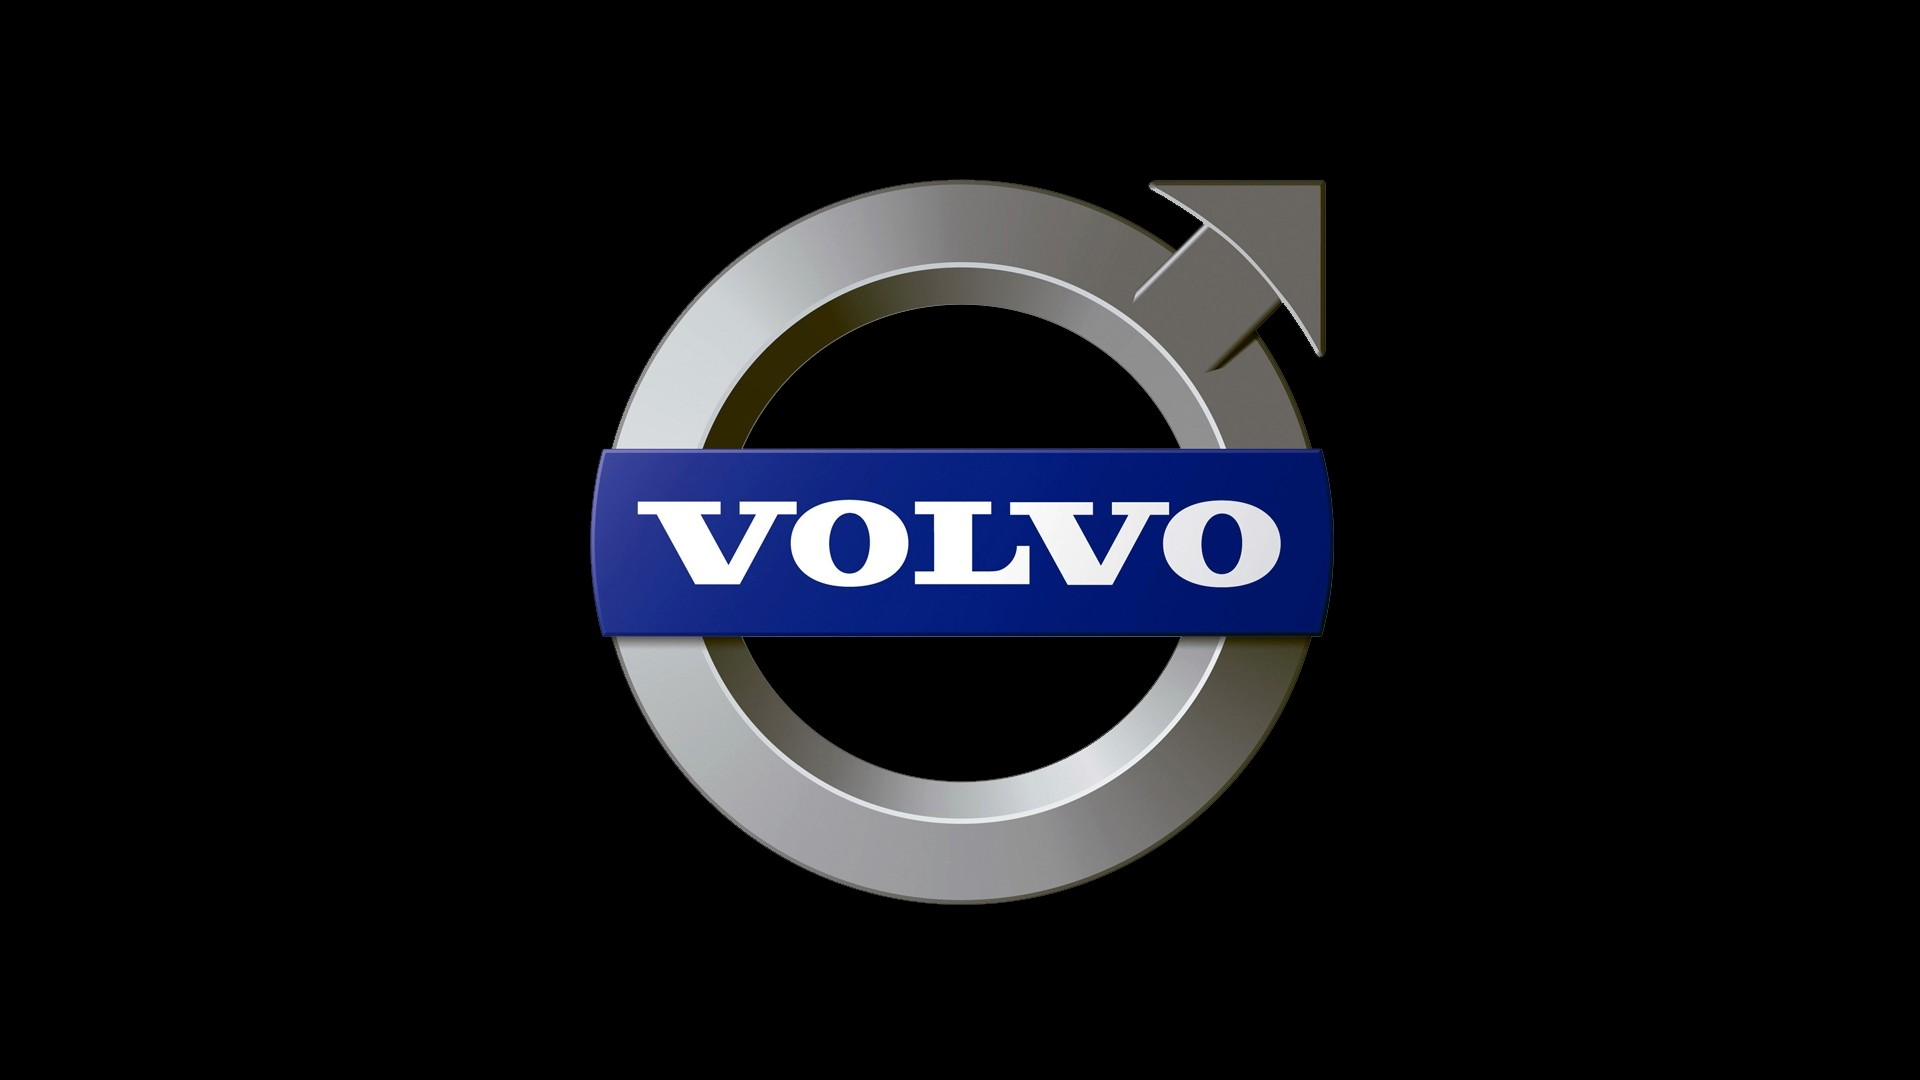 Volvo Logo Wallpaper Full HD #ARO